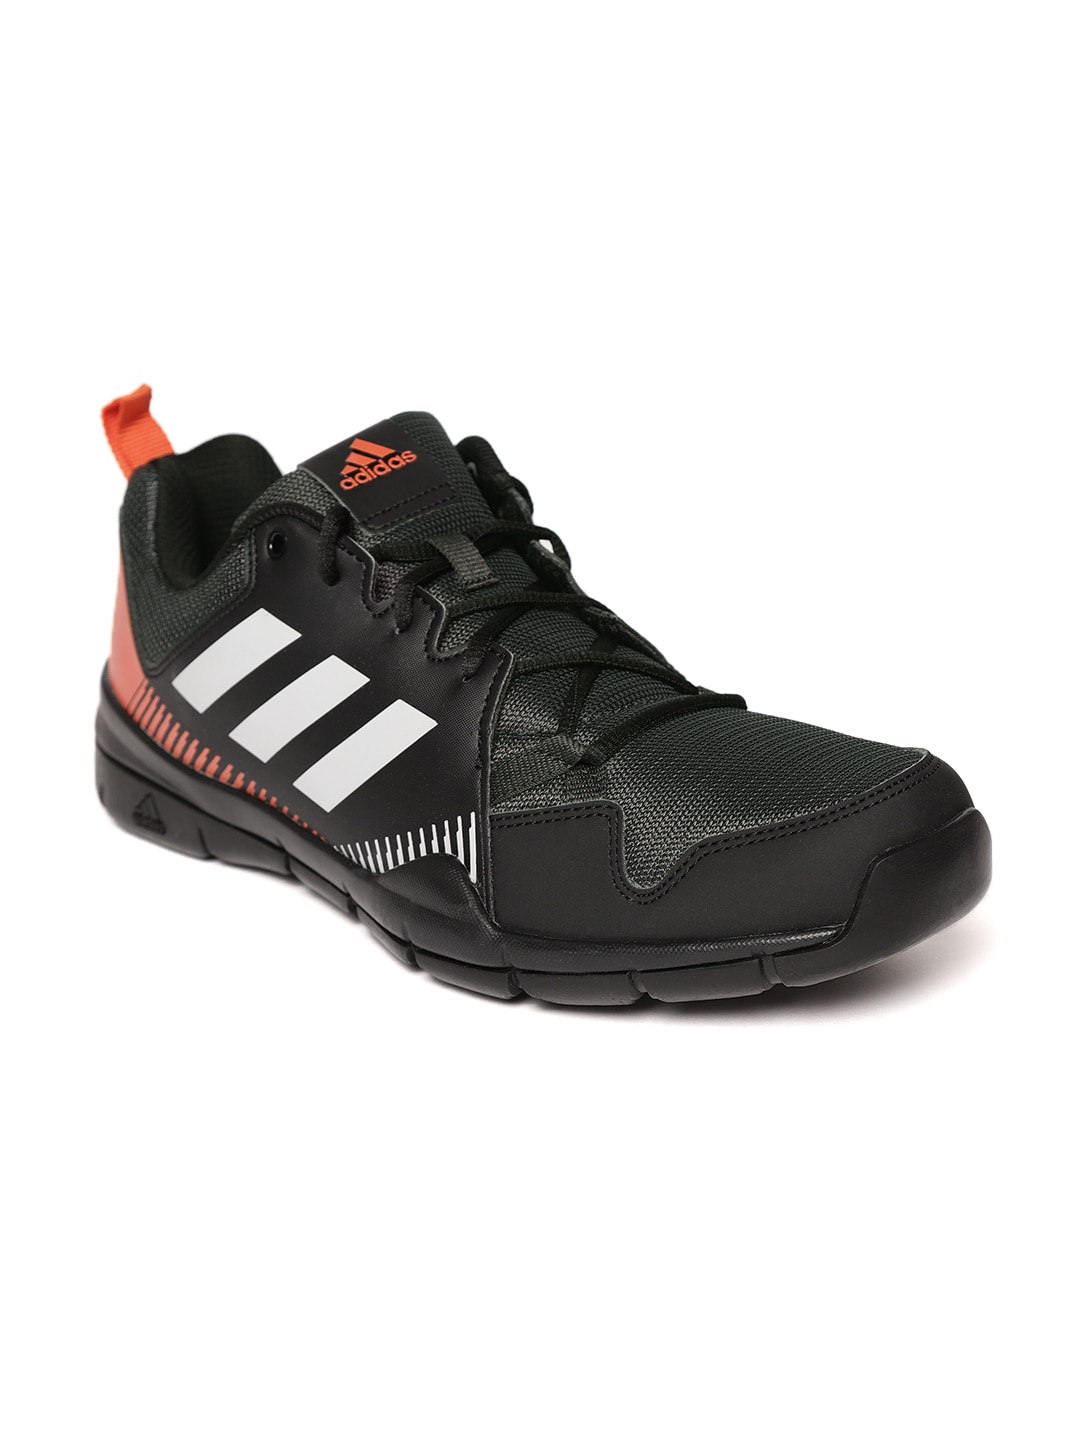 Adidas Shoes - Buy Adidas Shoes for Men   Women Online - Myntra b51db12916e6